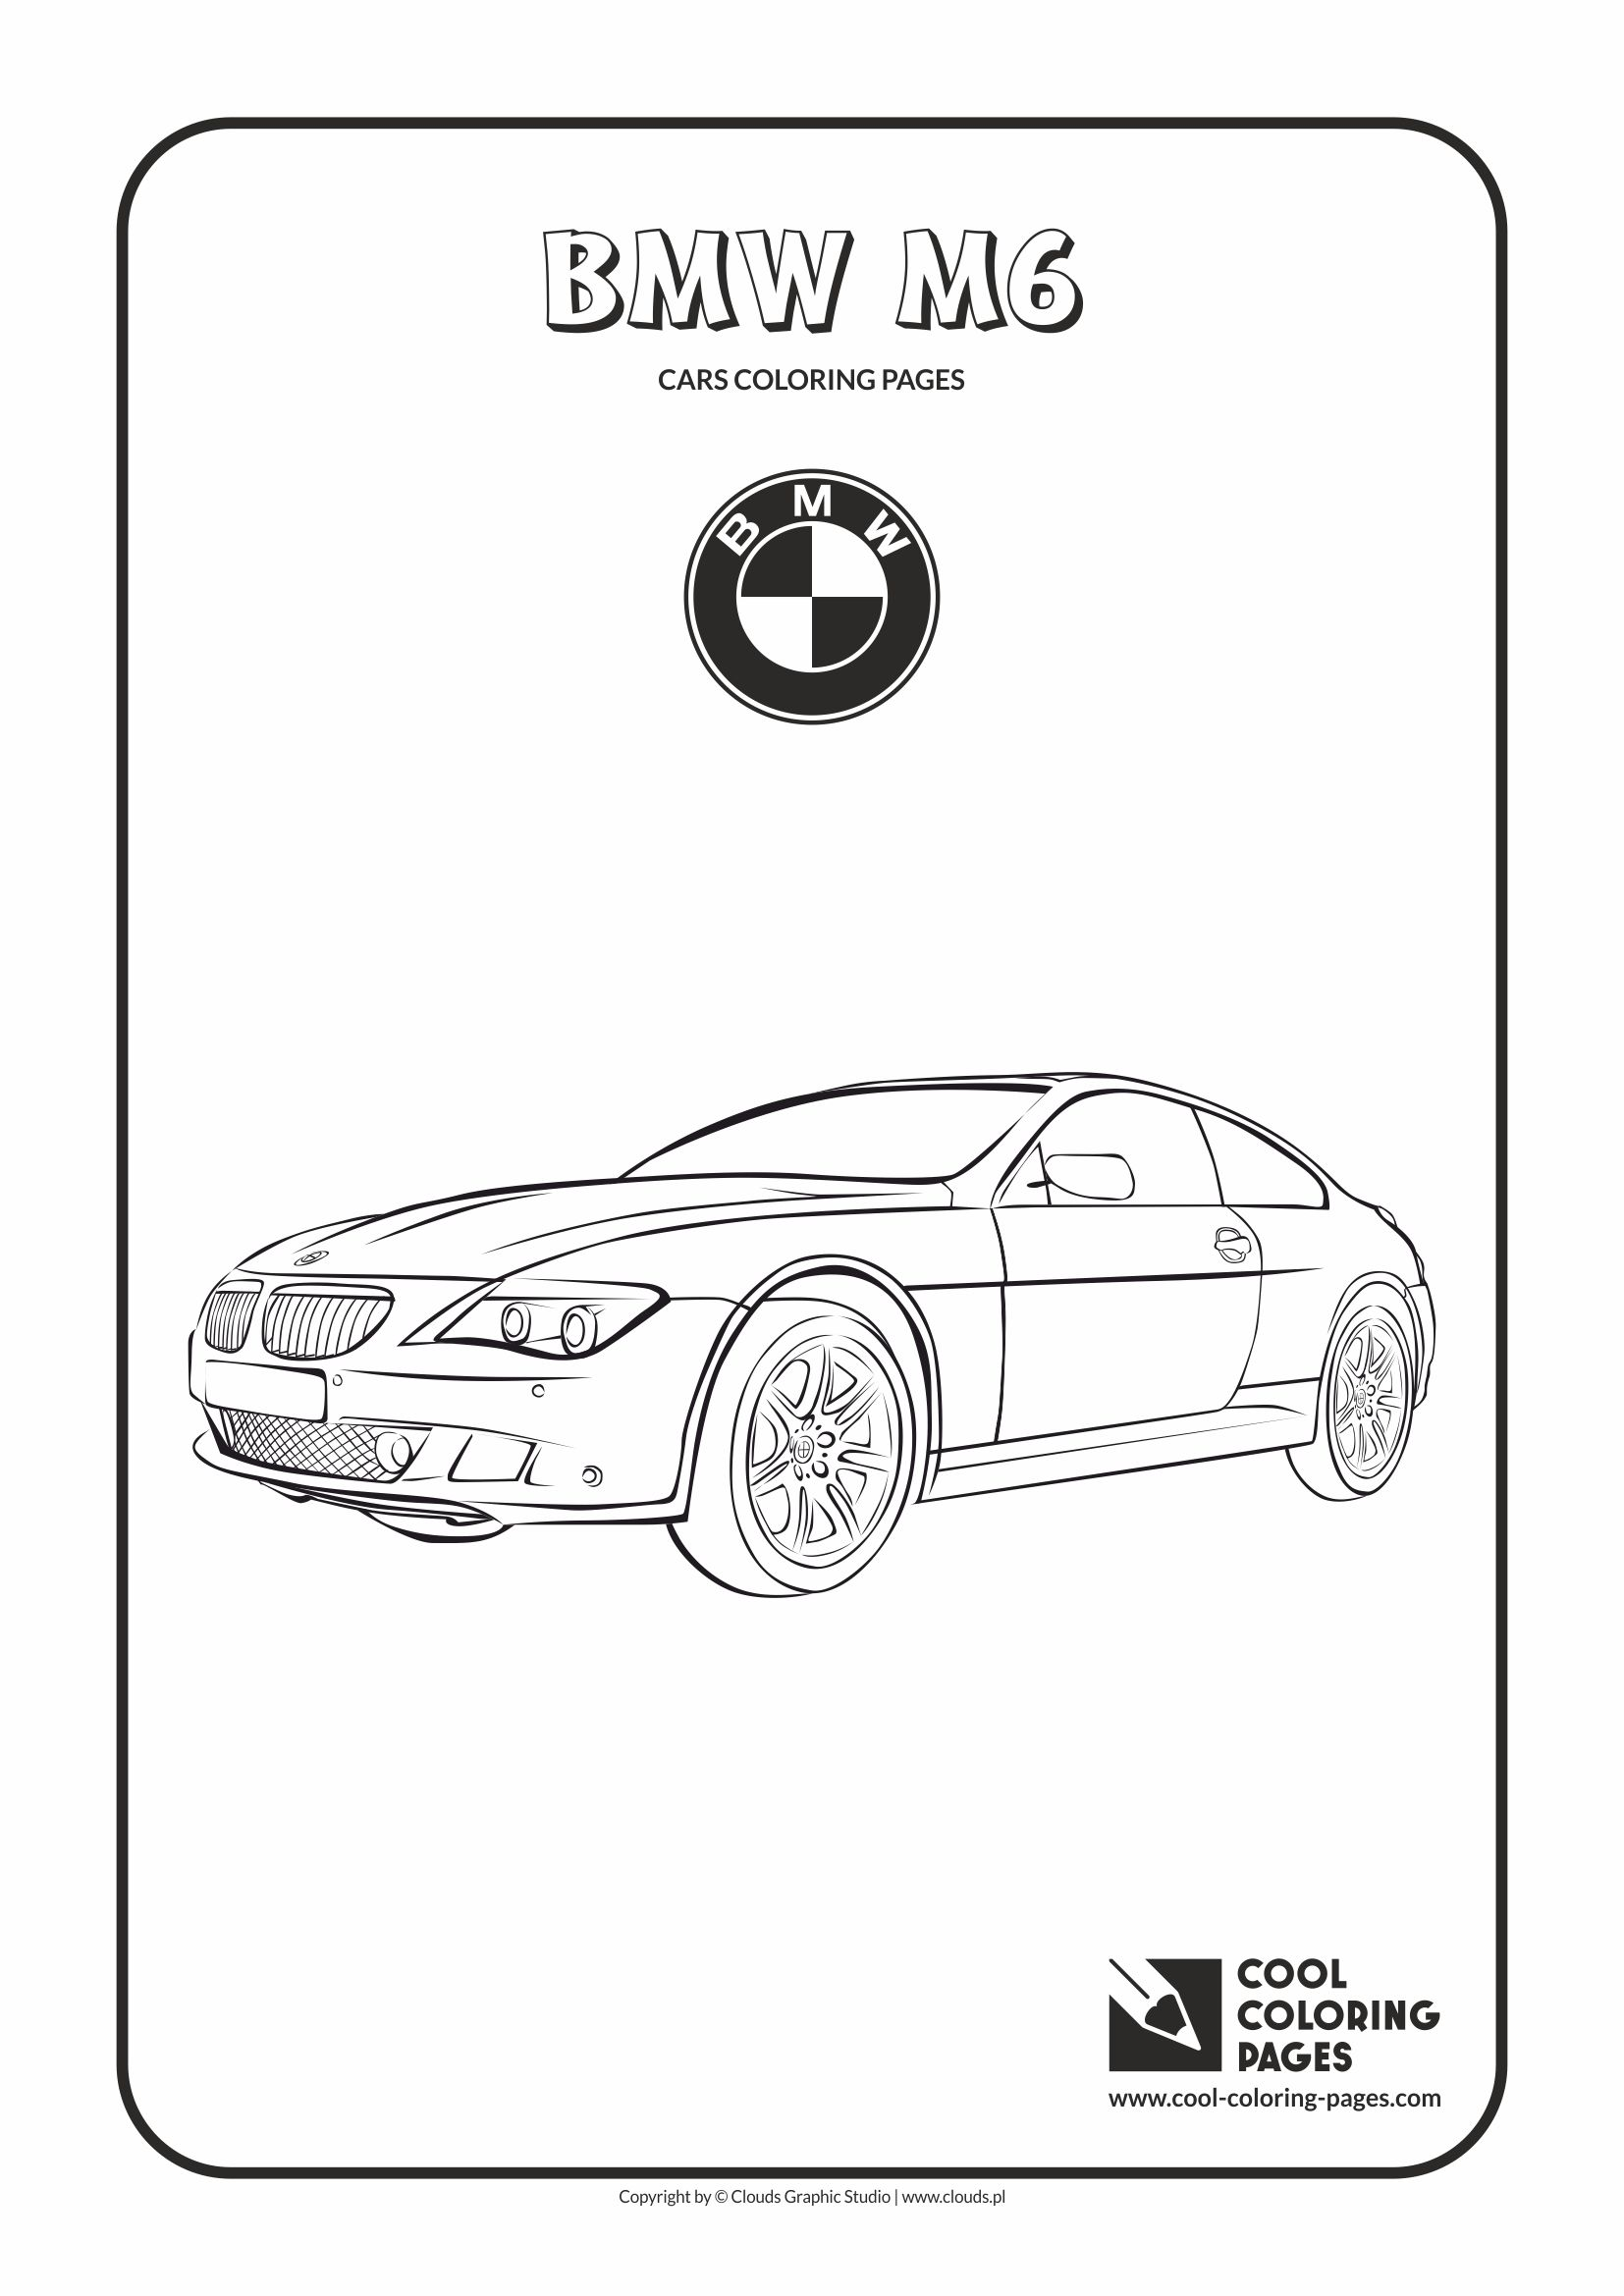 Cool Coloring Pages - Vehicles / Bmw M6 / Coloring page with Bmw M6